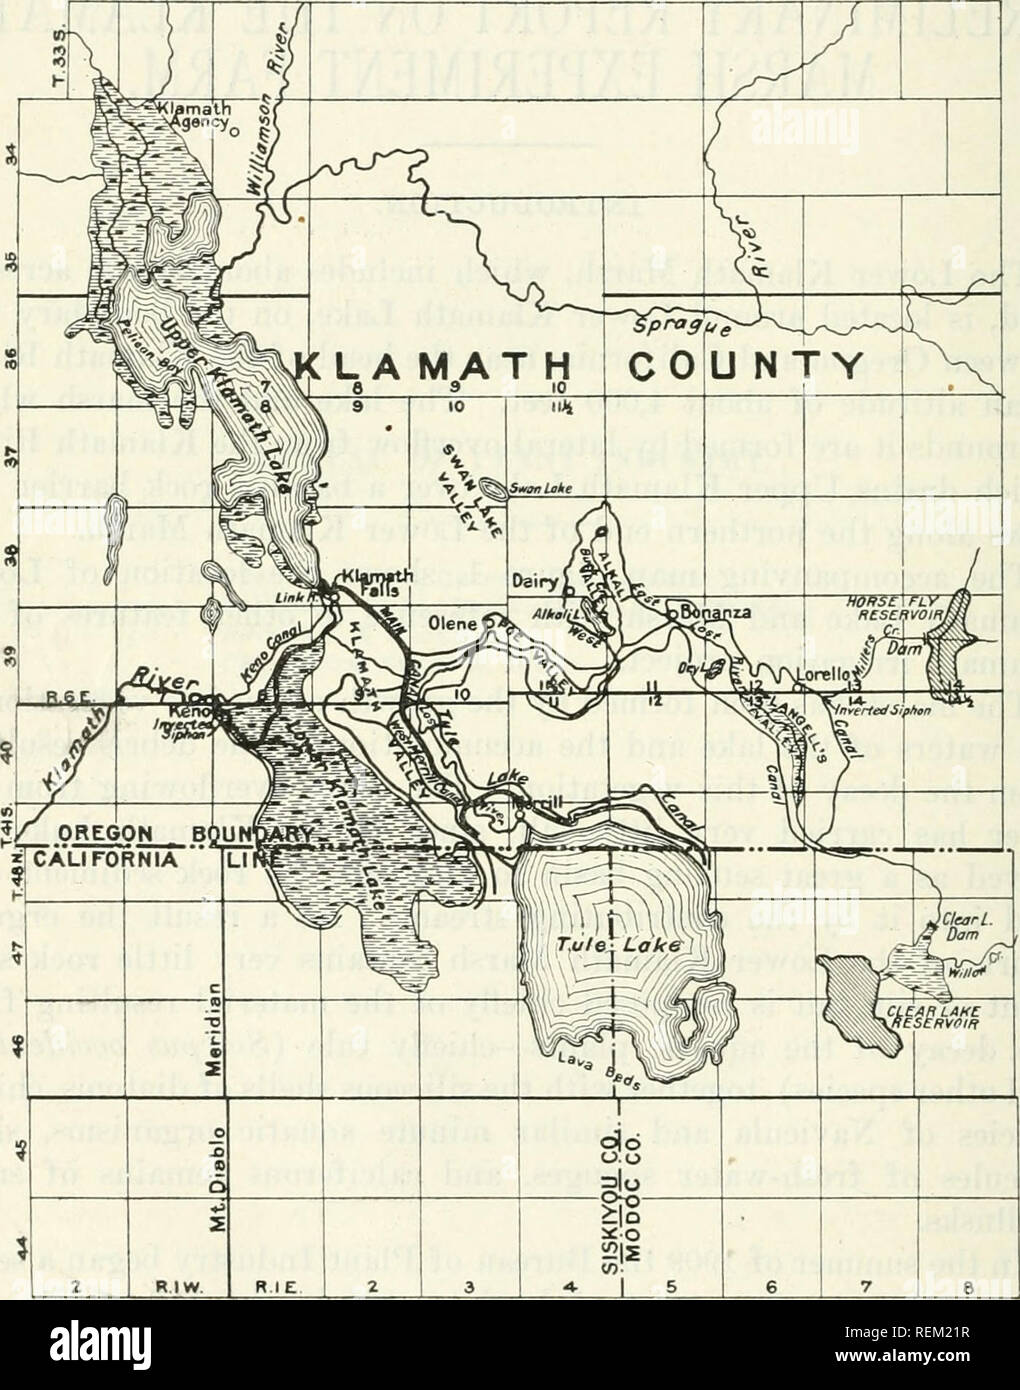 Circular. Agriculture; Agriculture -- United States. 4 KEPOKT ON THE on klamath county map, trinity county map, six rivers national forest map, klamath national forest map, klamath basin map, humboldt county map, roosevelt national forest trail map, oregon rivers map, lake of the woods map, lower klamath national wildlife refuge map, klamath mountains map, morgan hill map, prairie creek redwoods state park map, trinity lake map, klamath marsh map, klamath lake map, southern oregon northern california map, highland map, redwood national and state parks map,